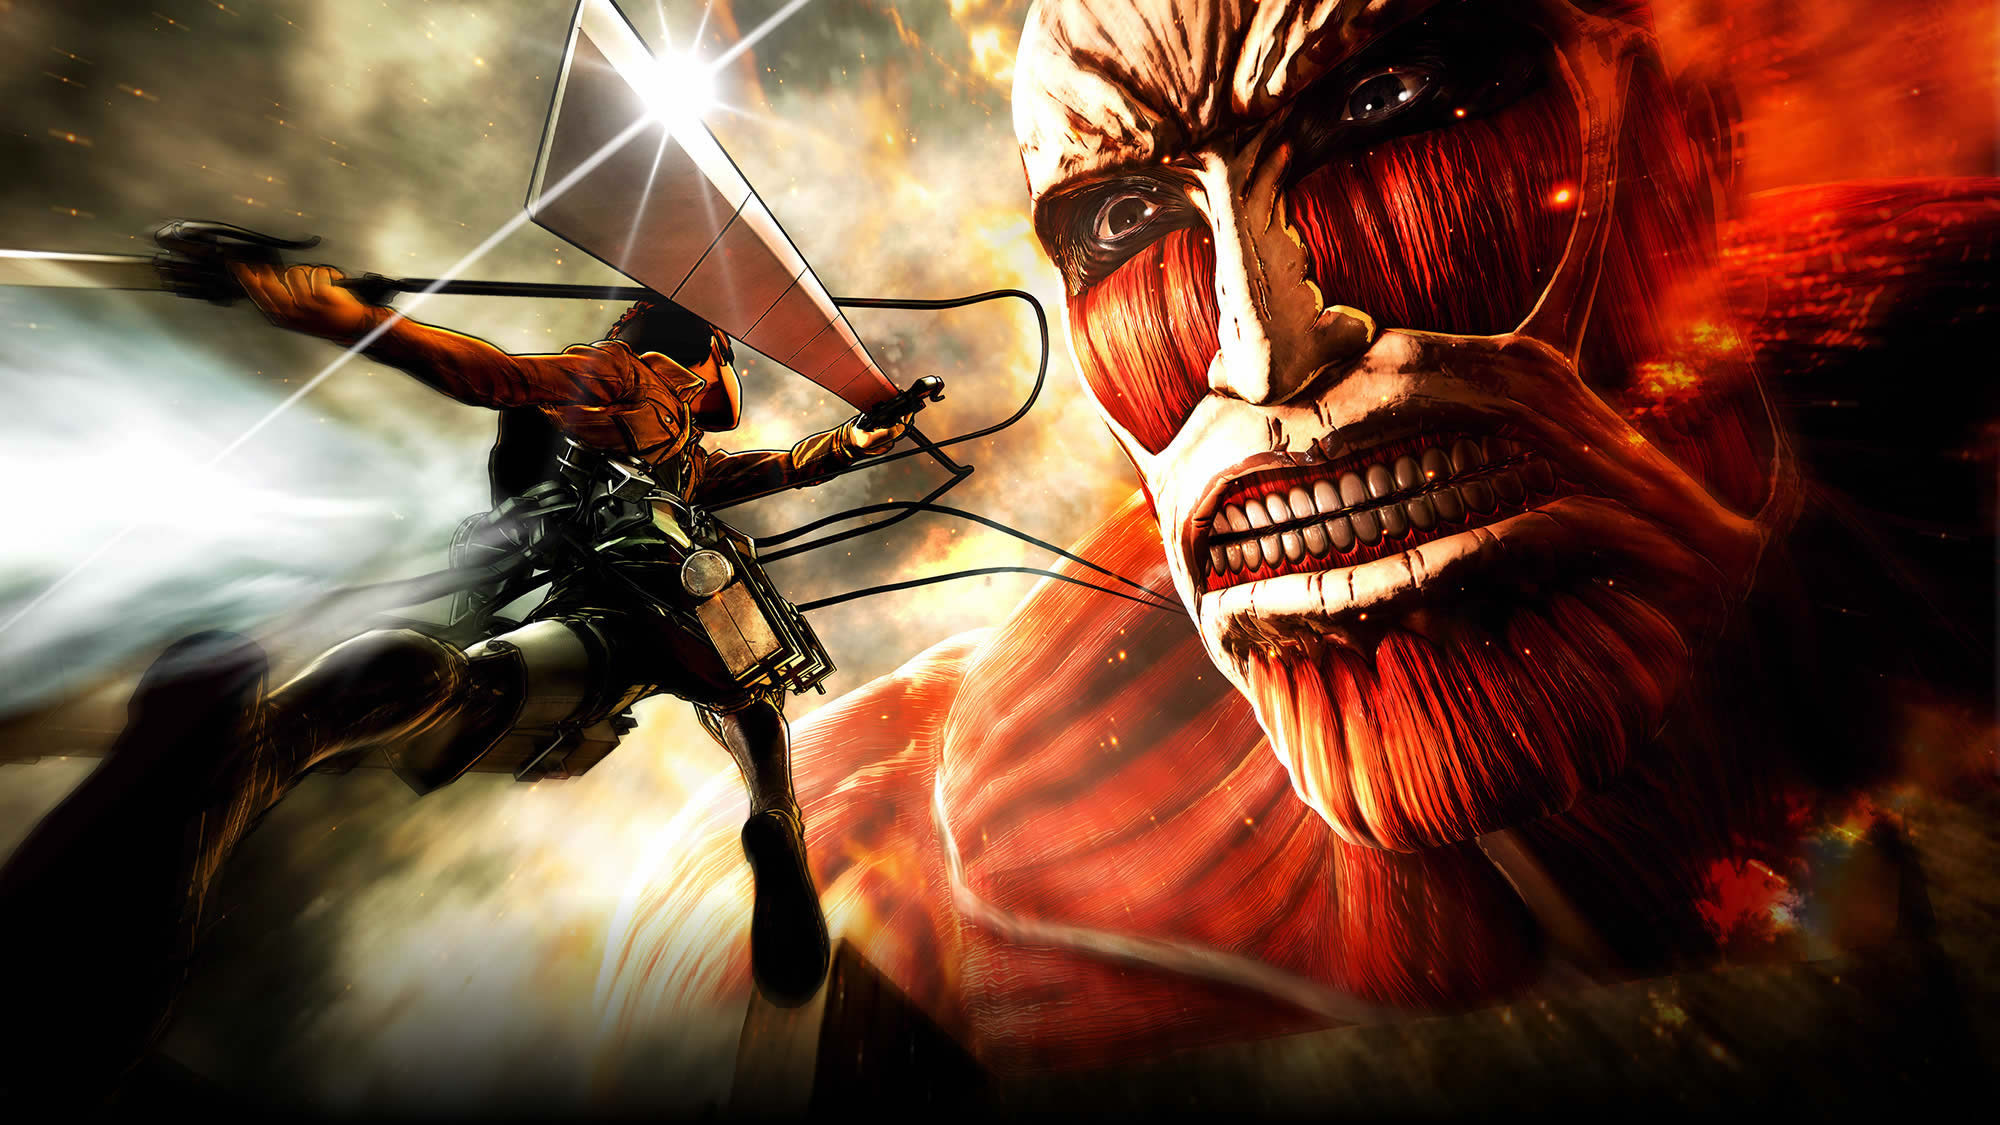 Attack On Titan Hd Wallpaper Background Image 2000x1125 Id 884623 Wallpaper Abyss